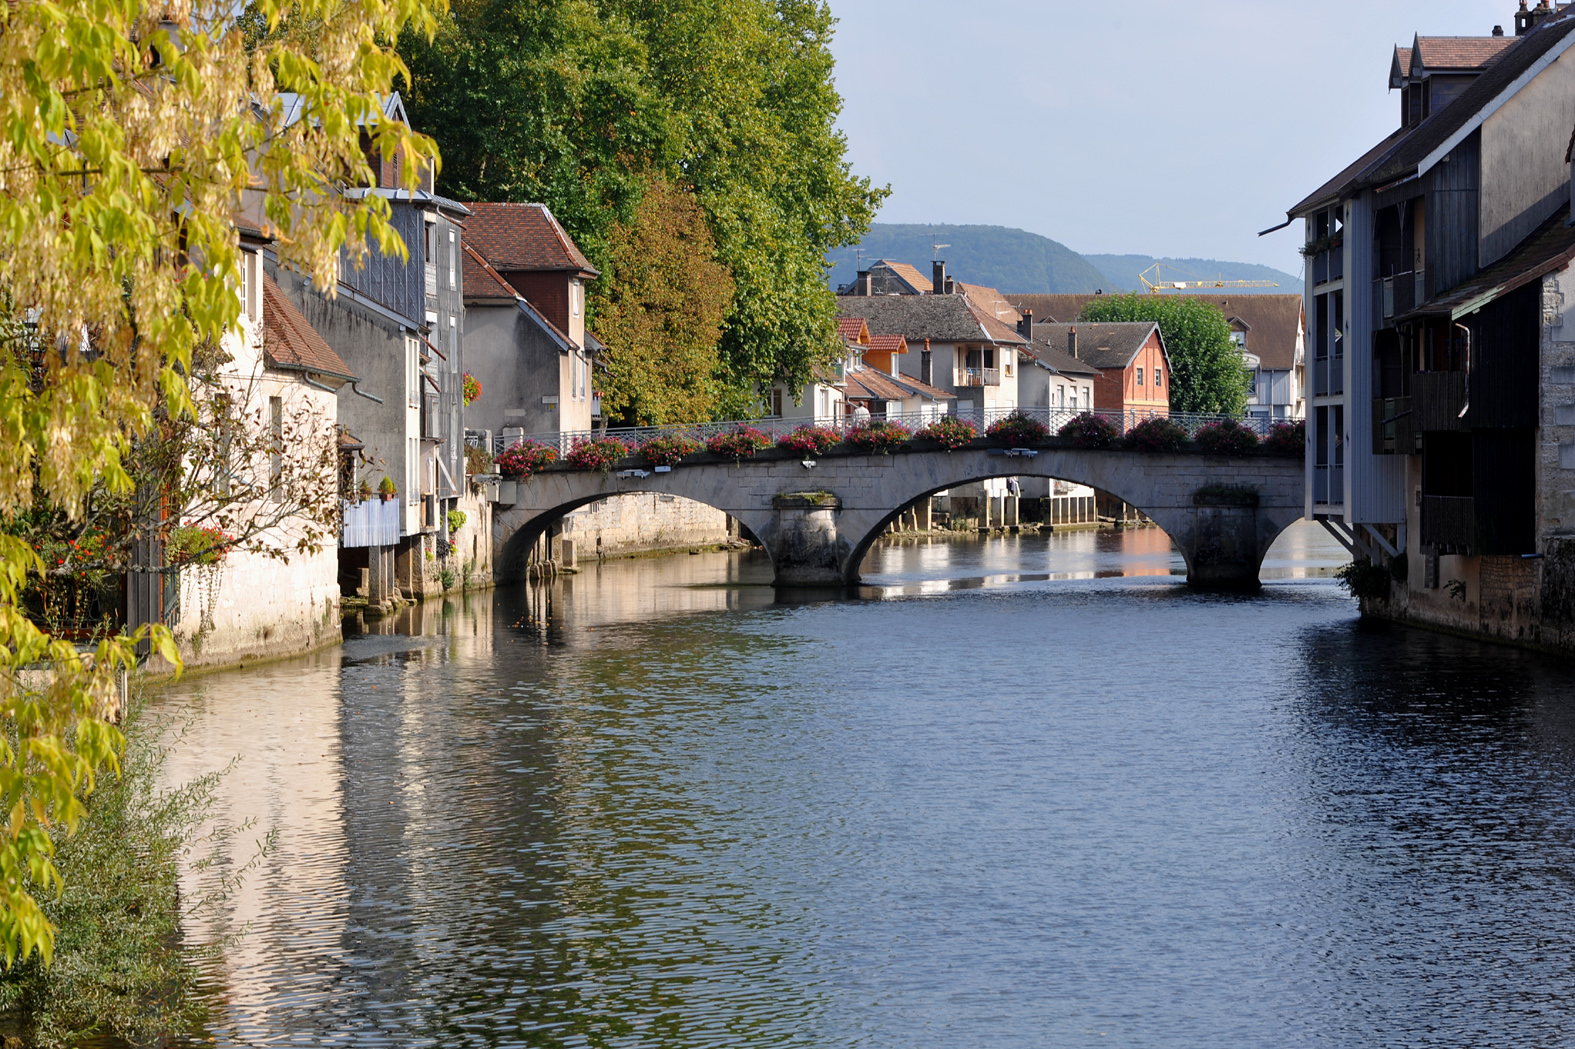 Ornans France  City pictures : Grand Pont, Ornans 01 09 Wikimedia Commons